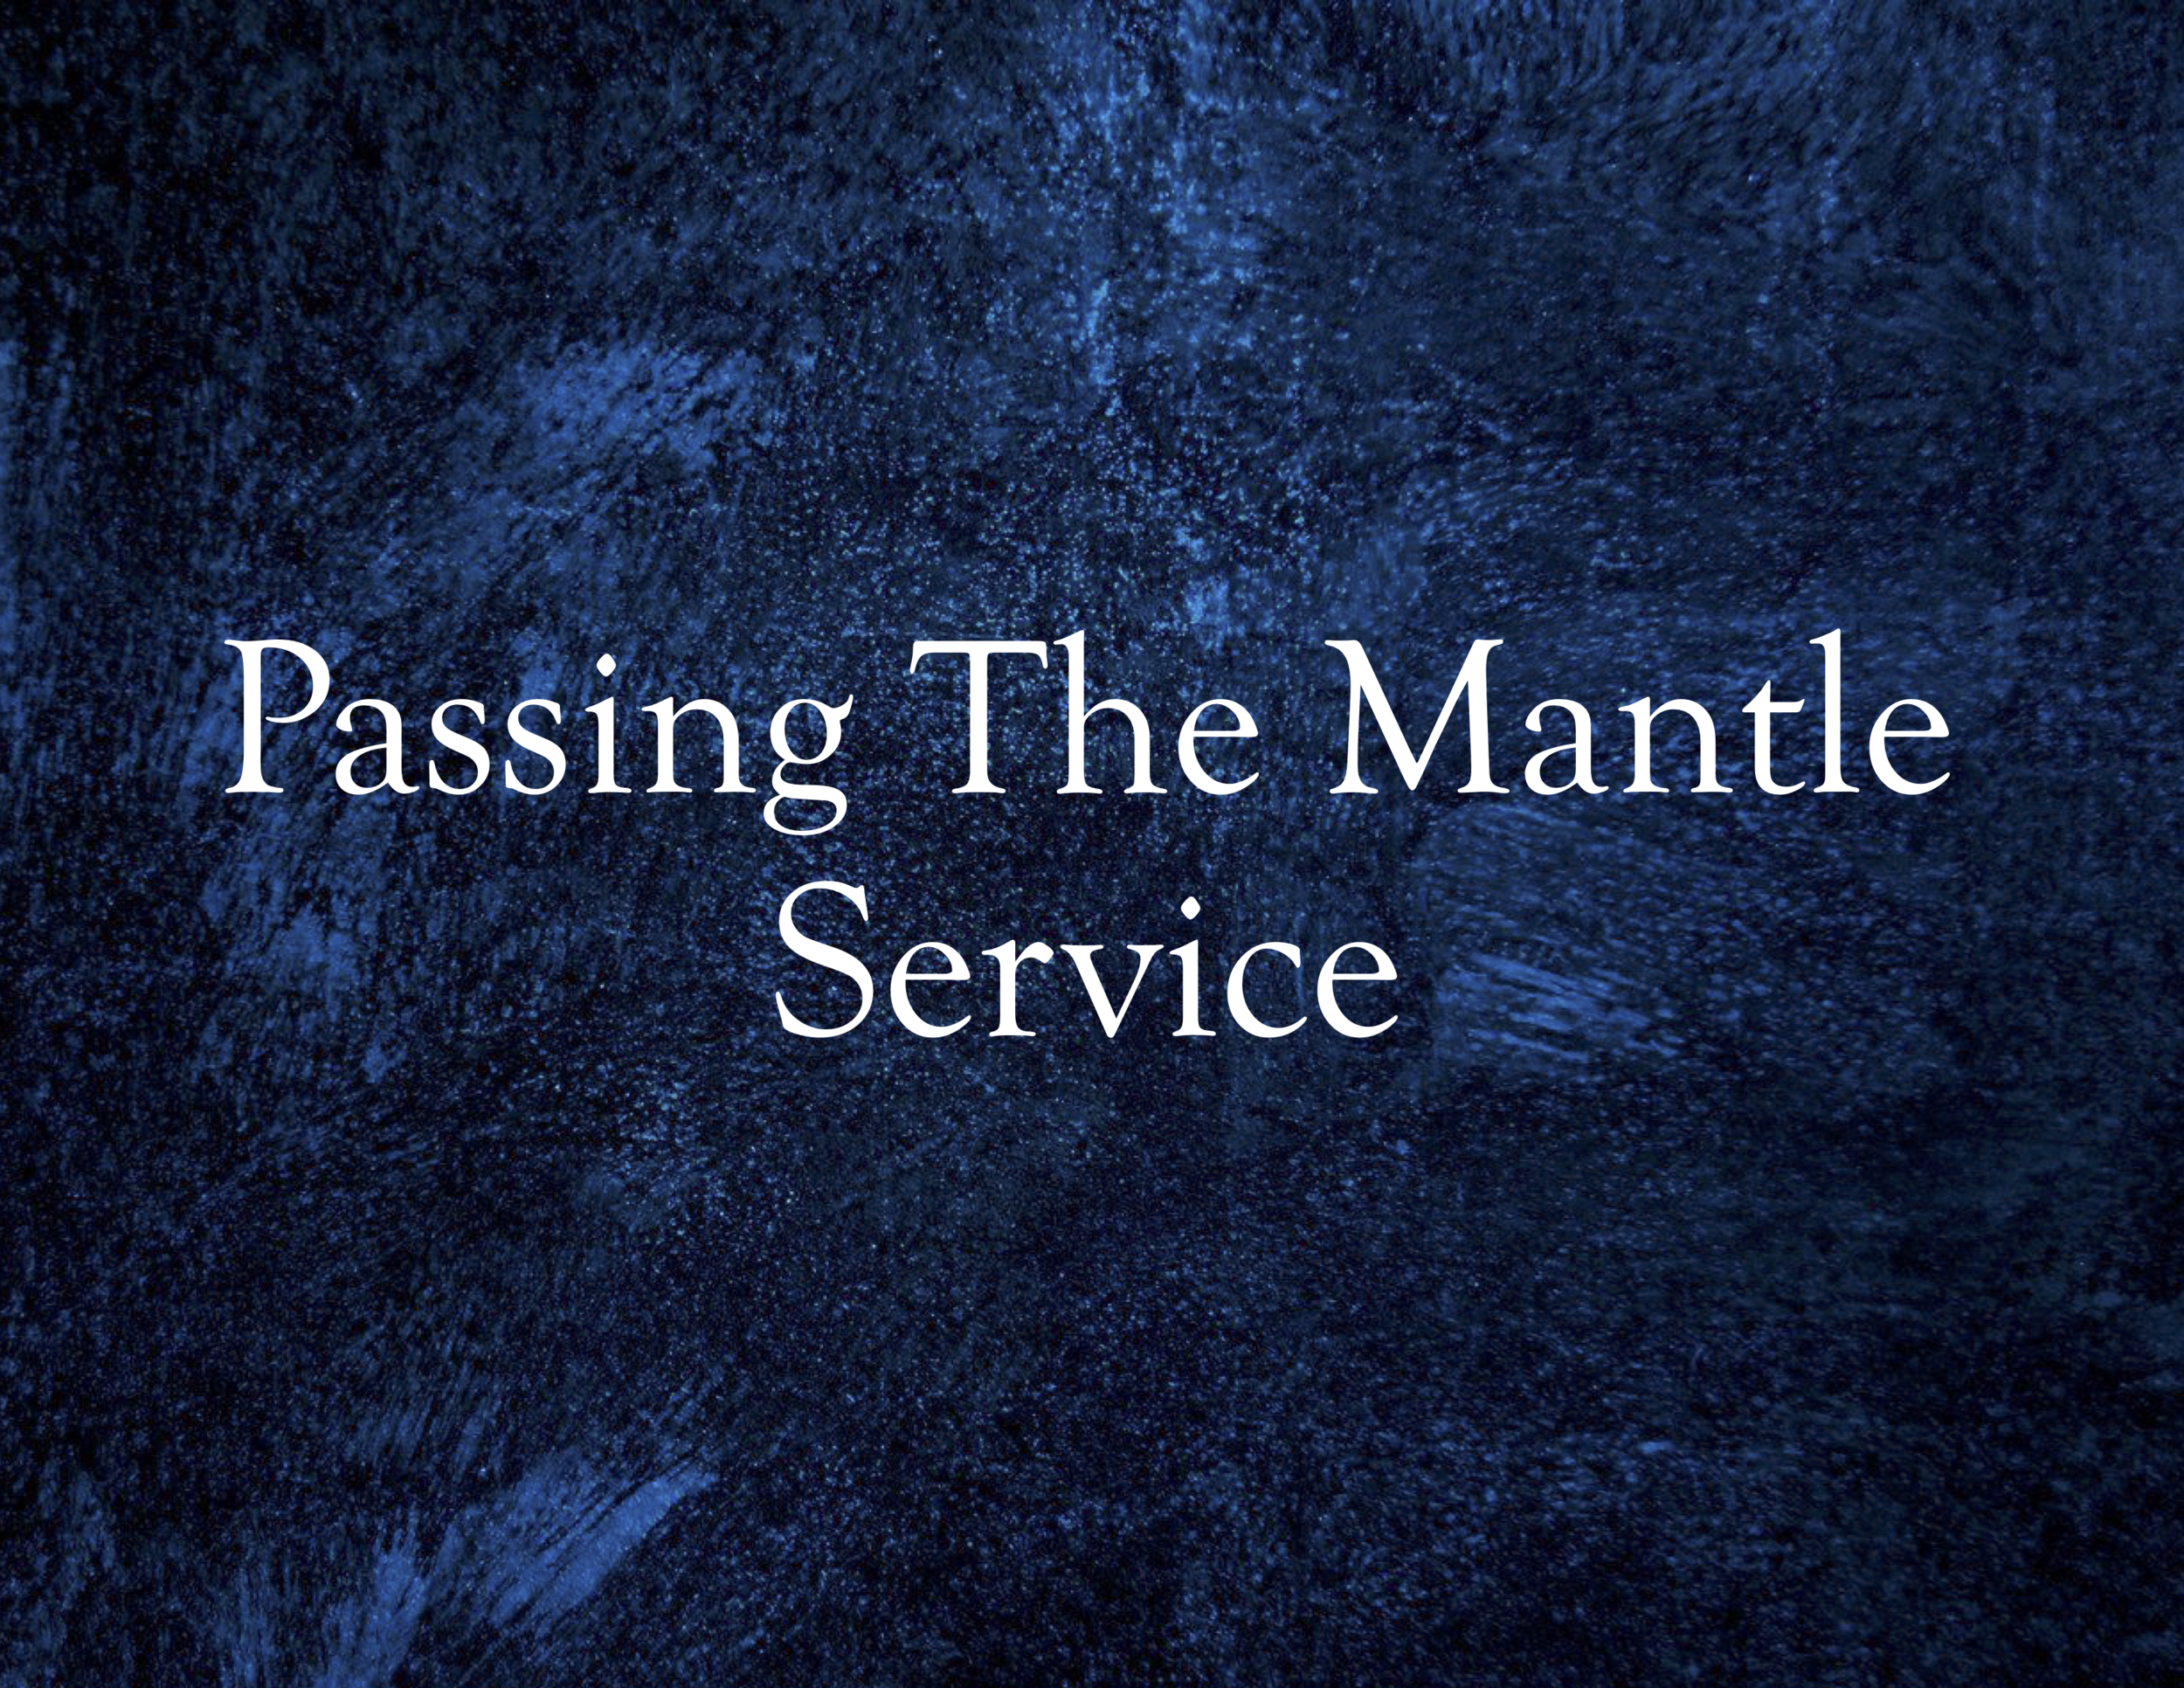 PAssing the mantle service.png